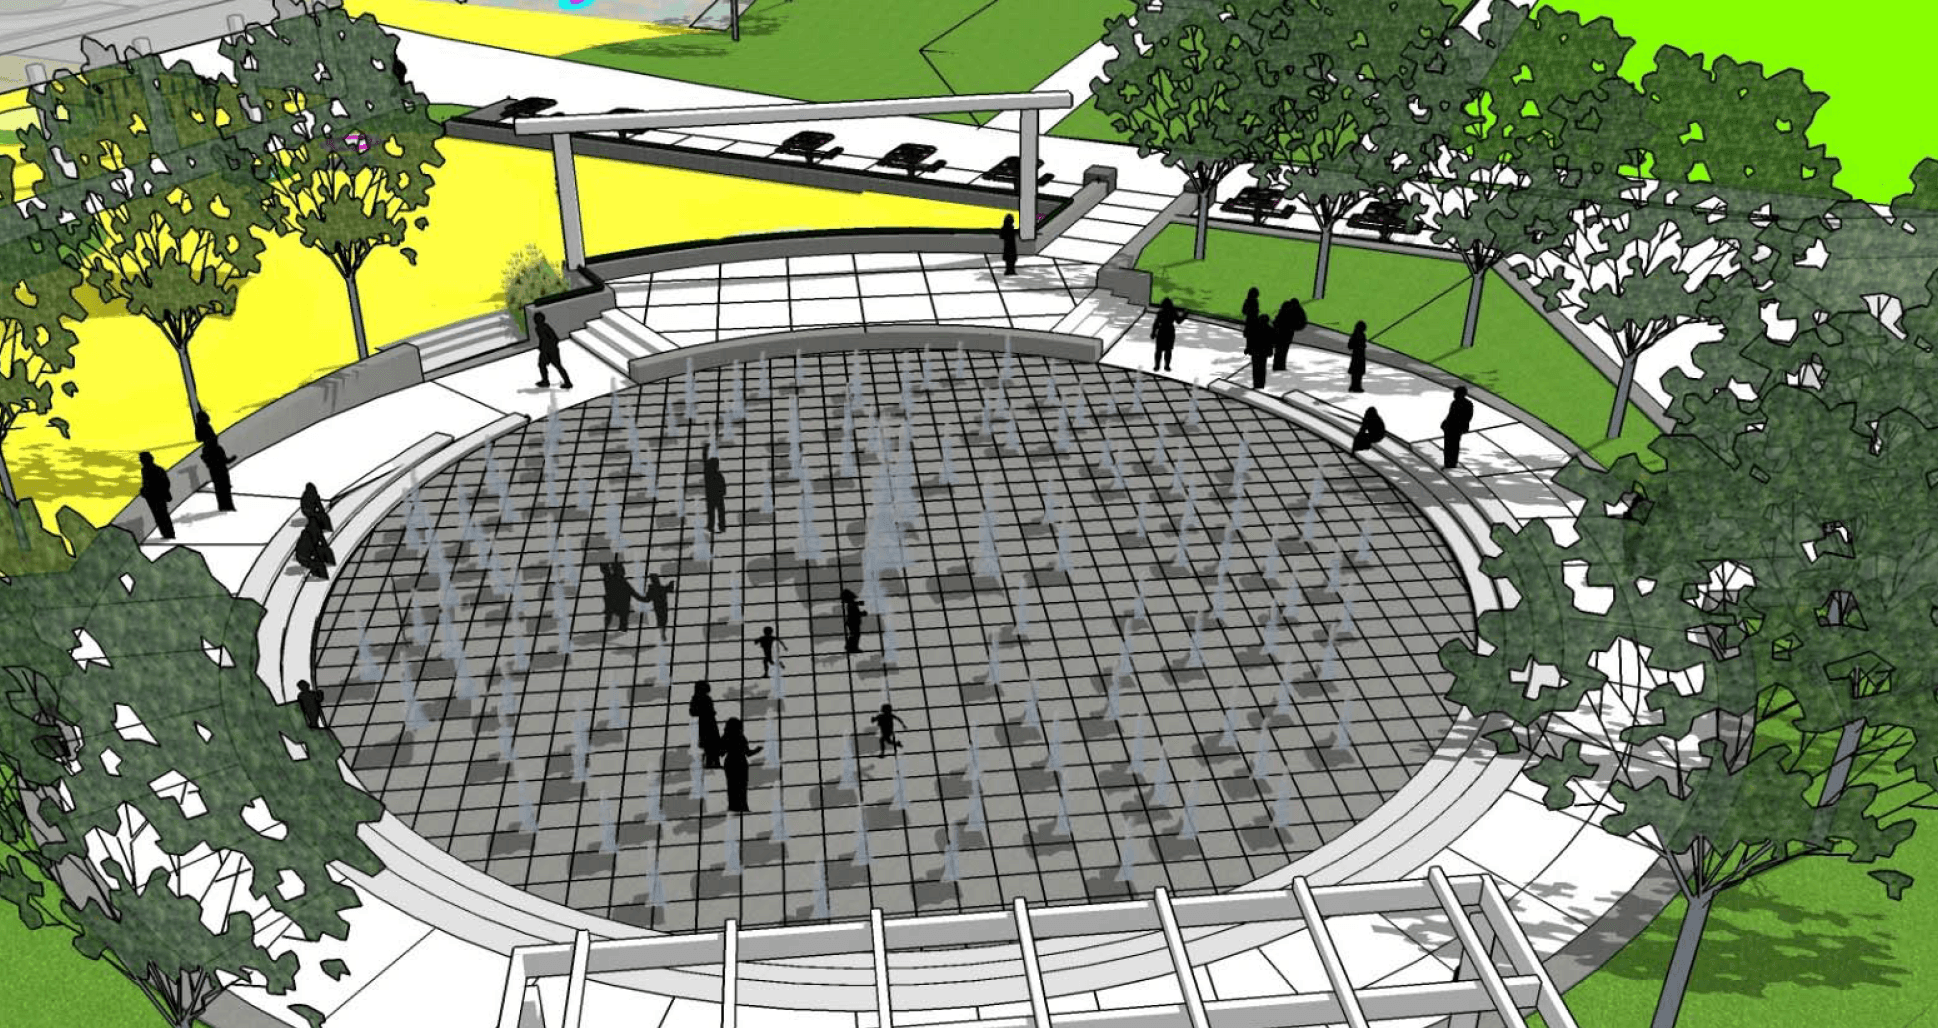 Snohomish County Splash Pad Proposal